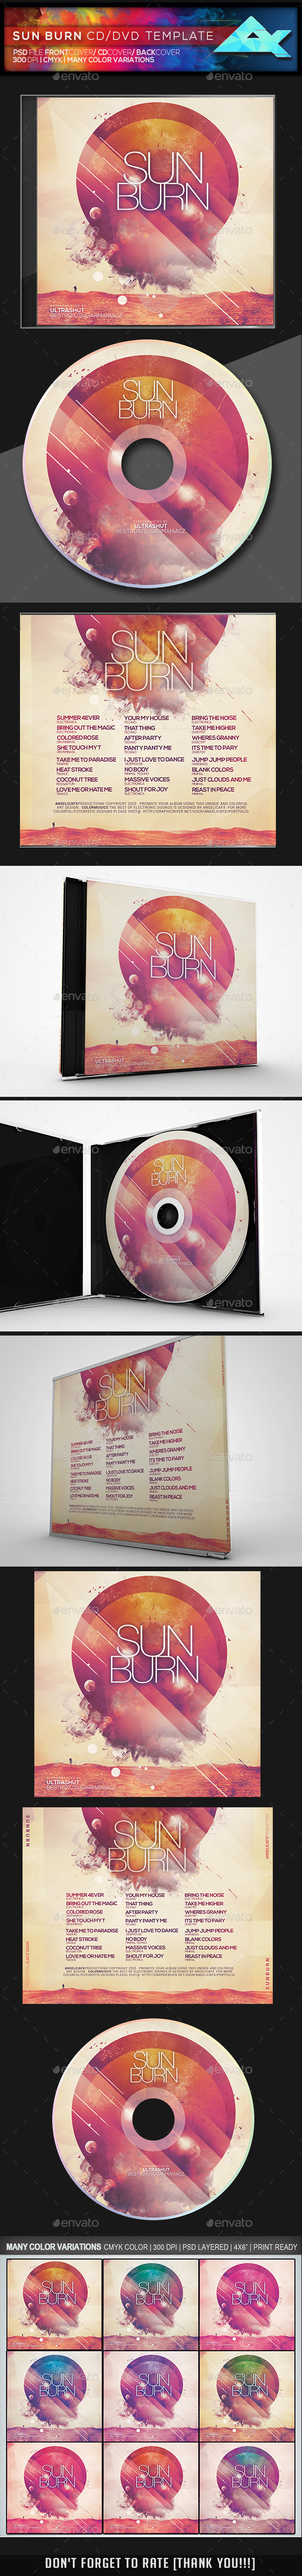 Sun Burn CD/DVD Template - CD & DVD Artwork Print Templates